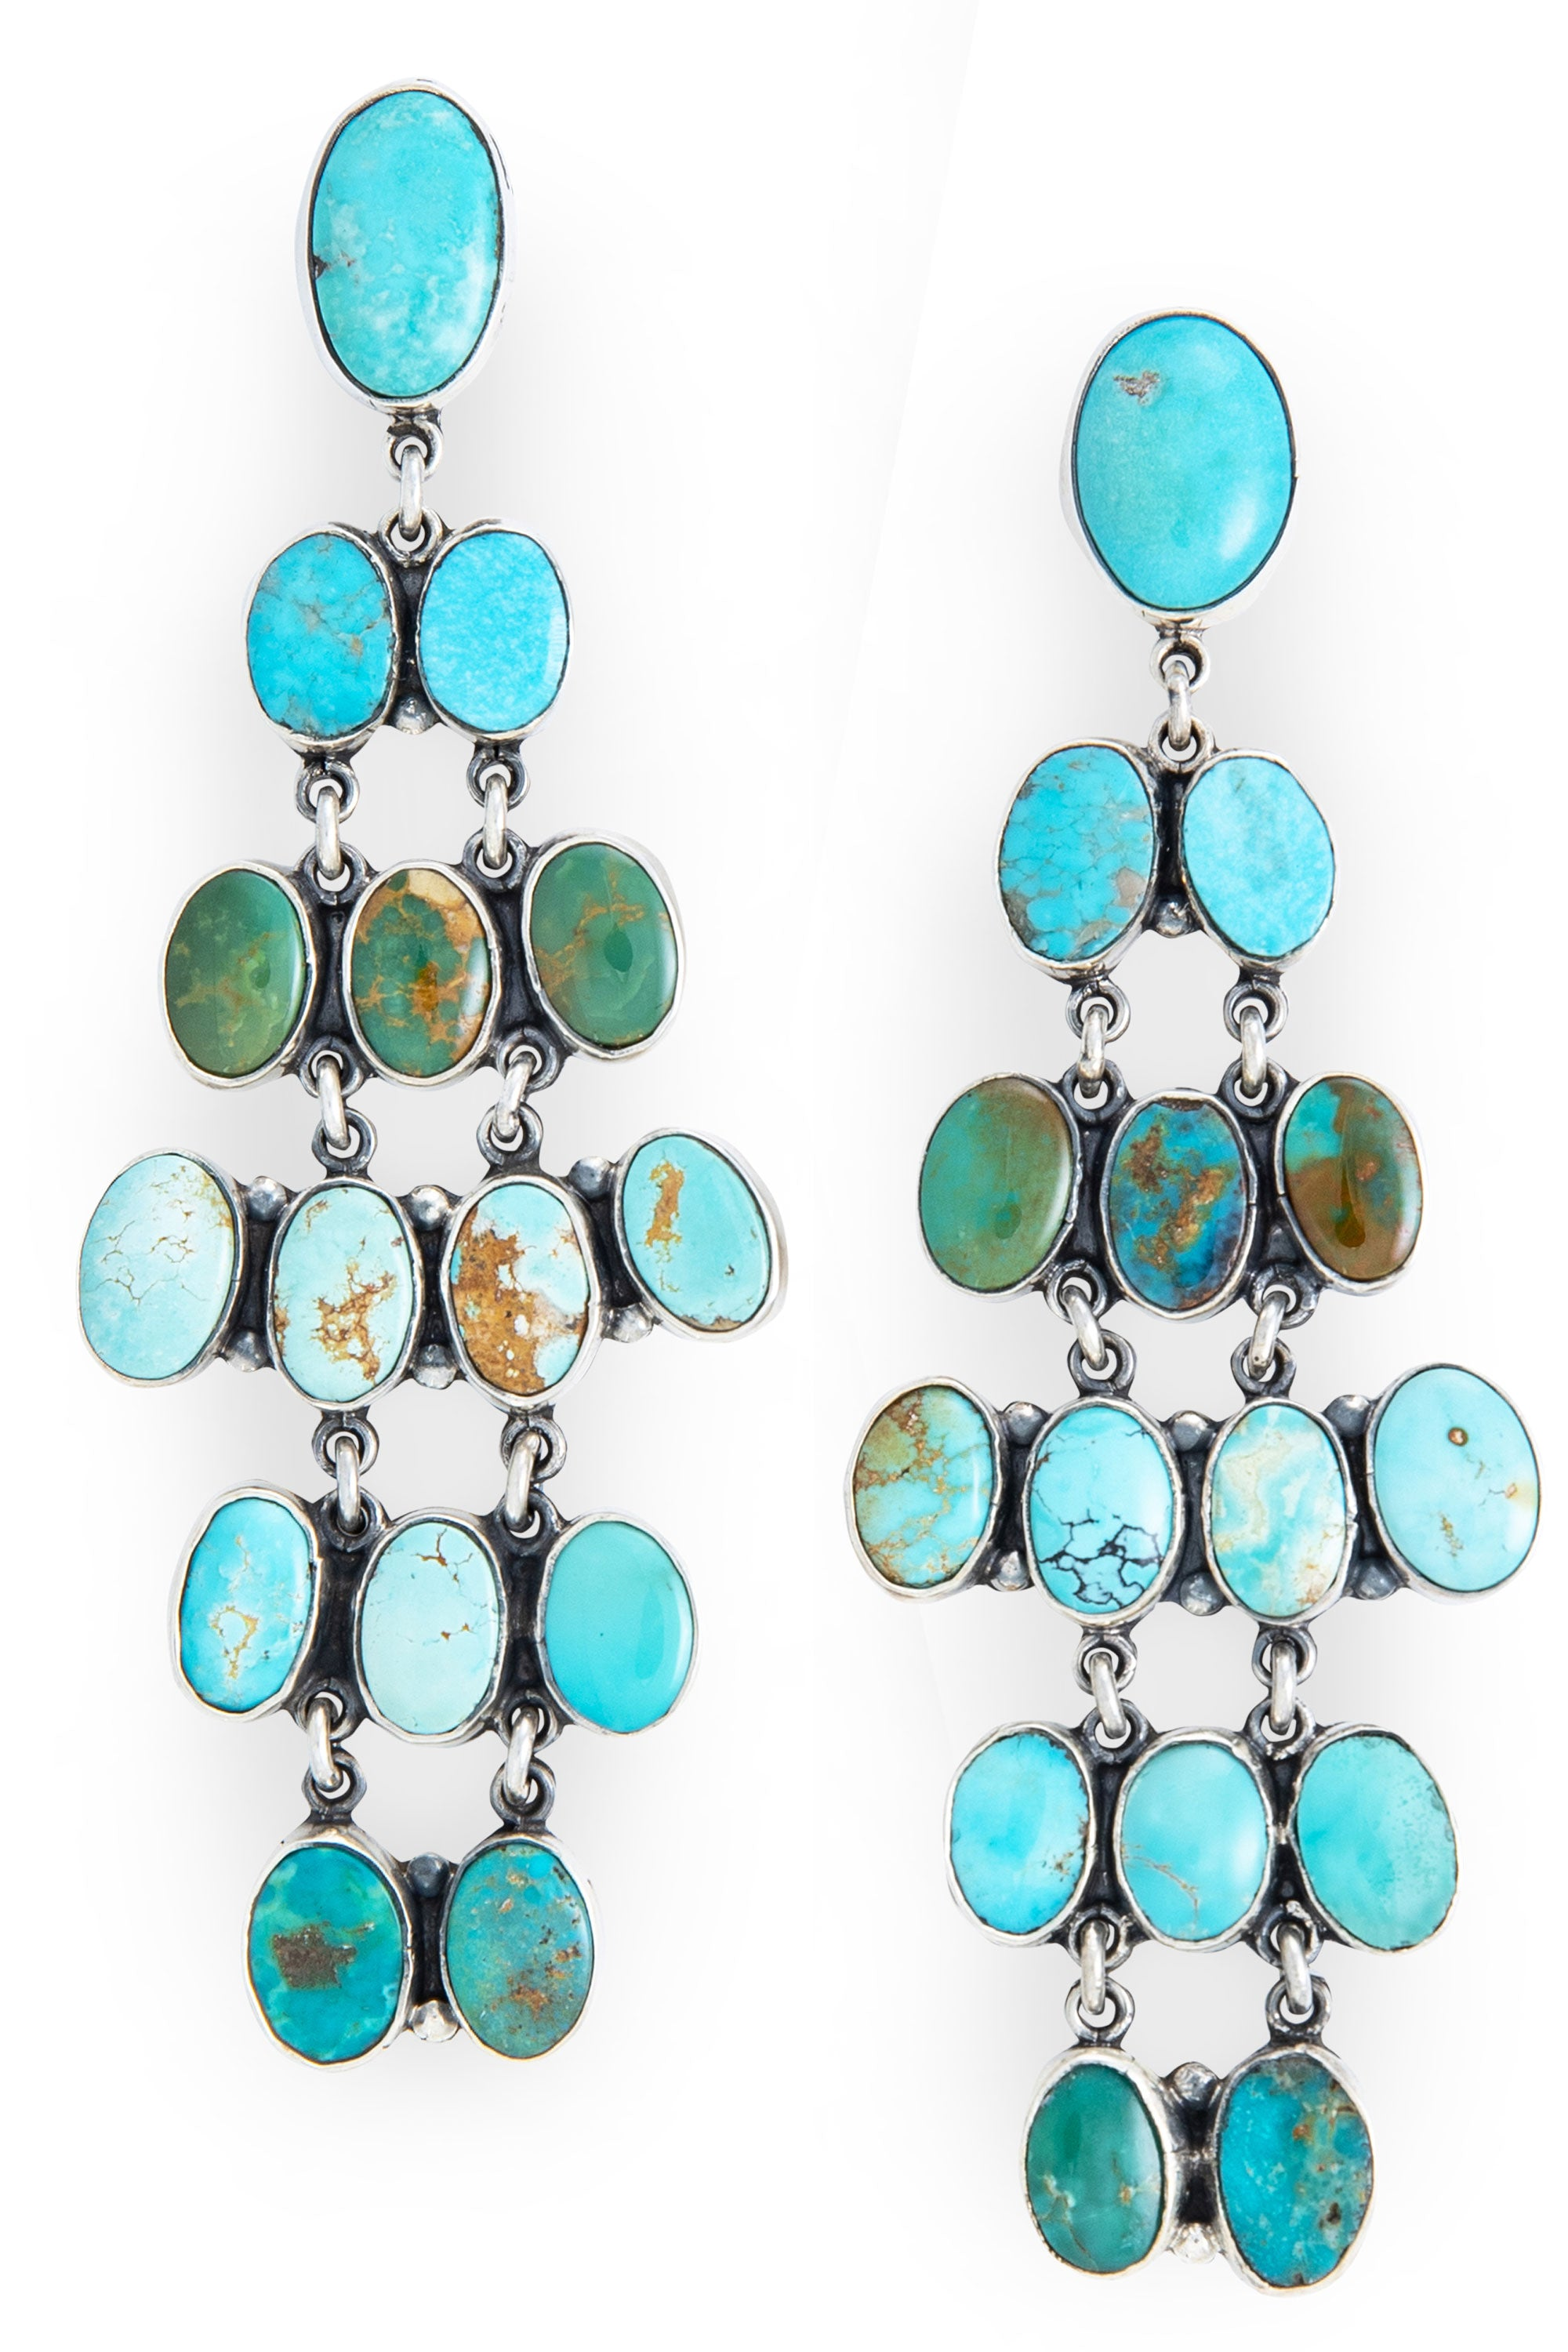 Earrings, Chandelier, Turquoise, Federico, Comtemporary, 535